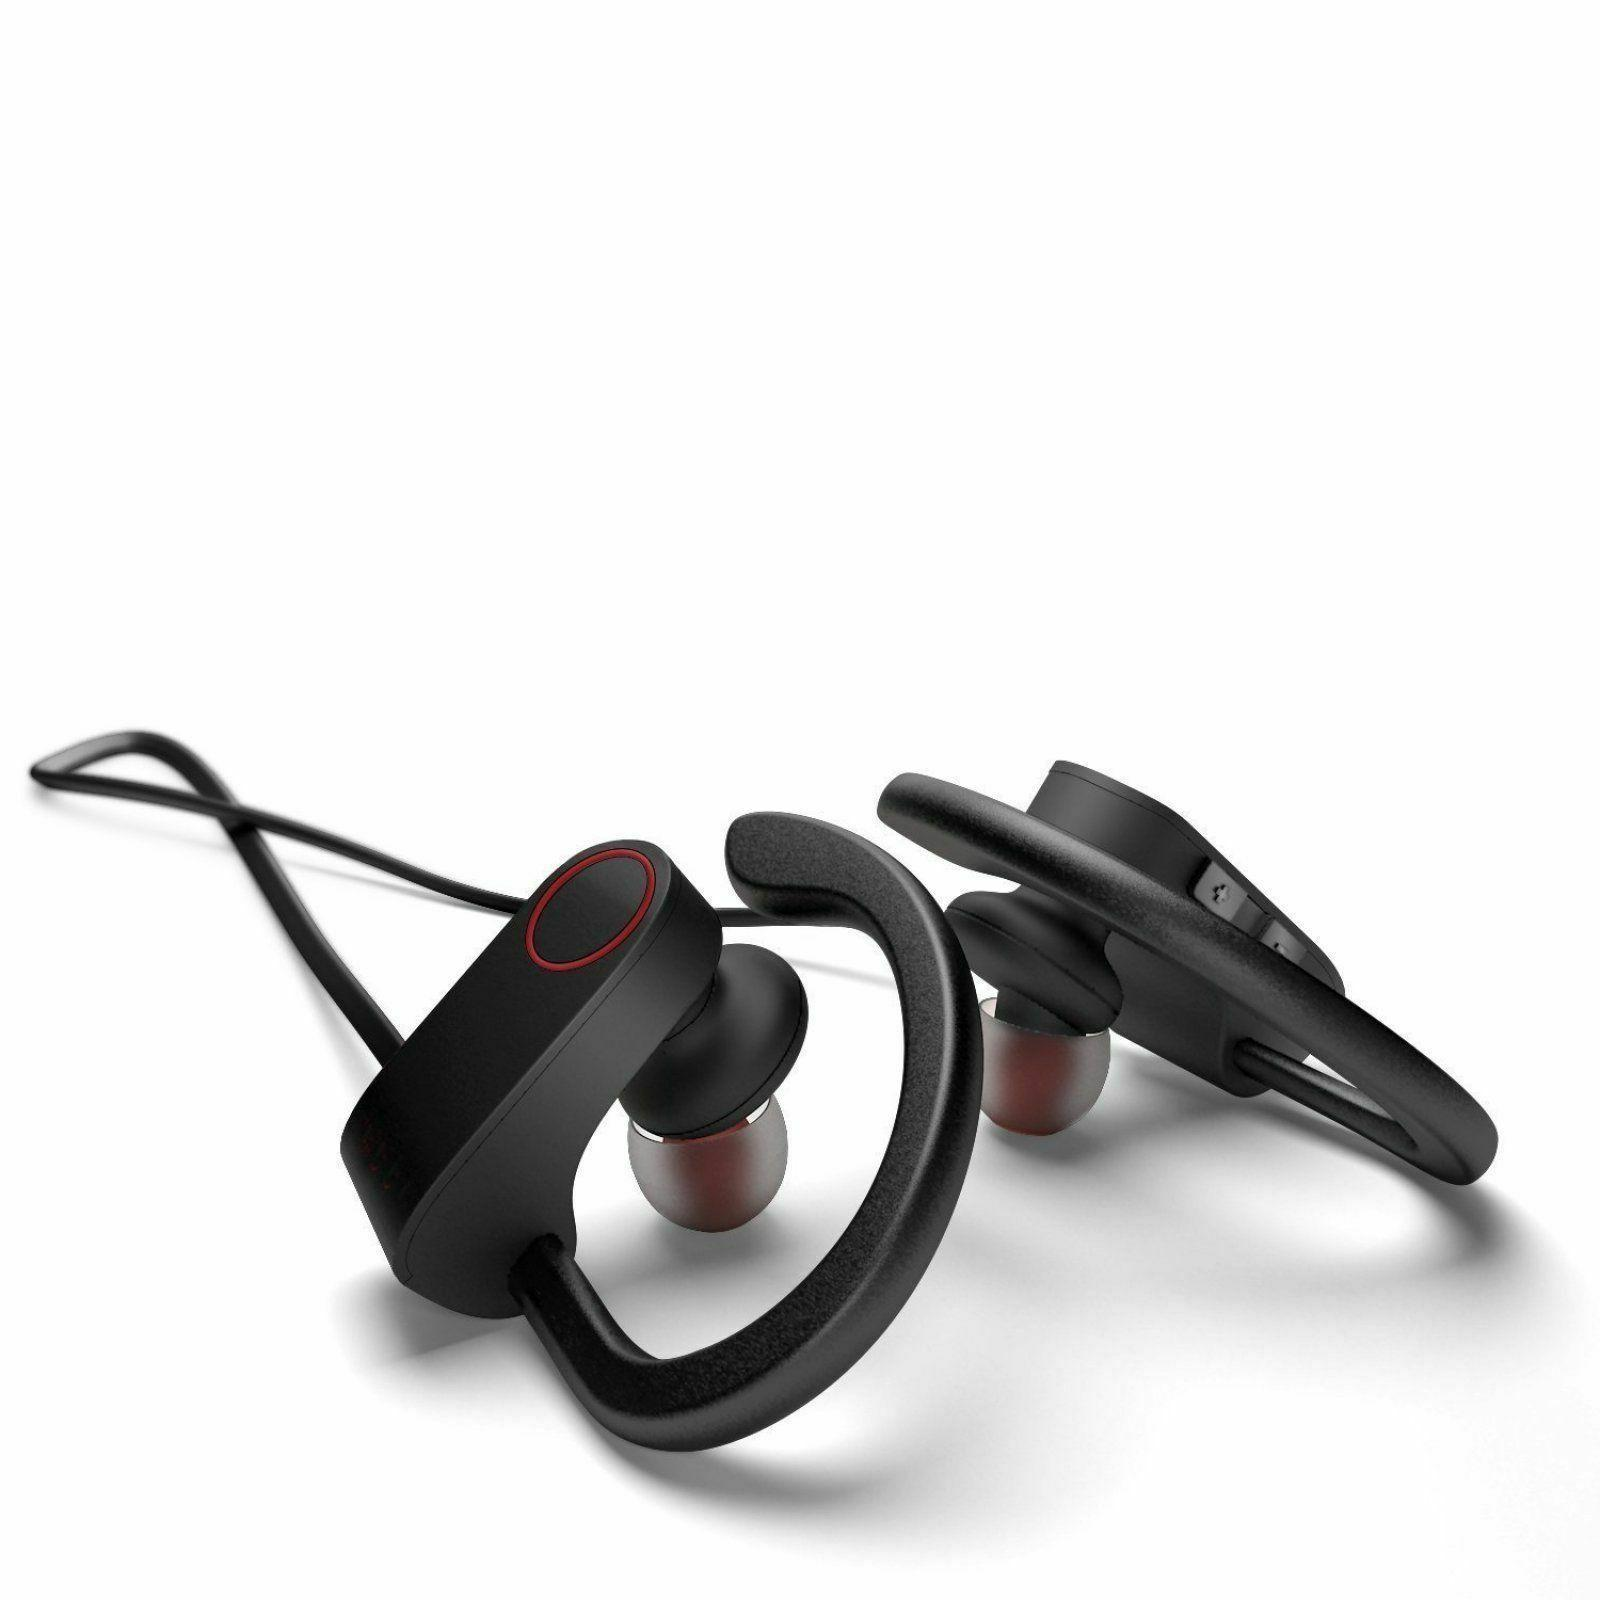 Waterproof Bluetooth Earbuds Sports Wireless Ear Headset